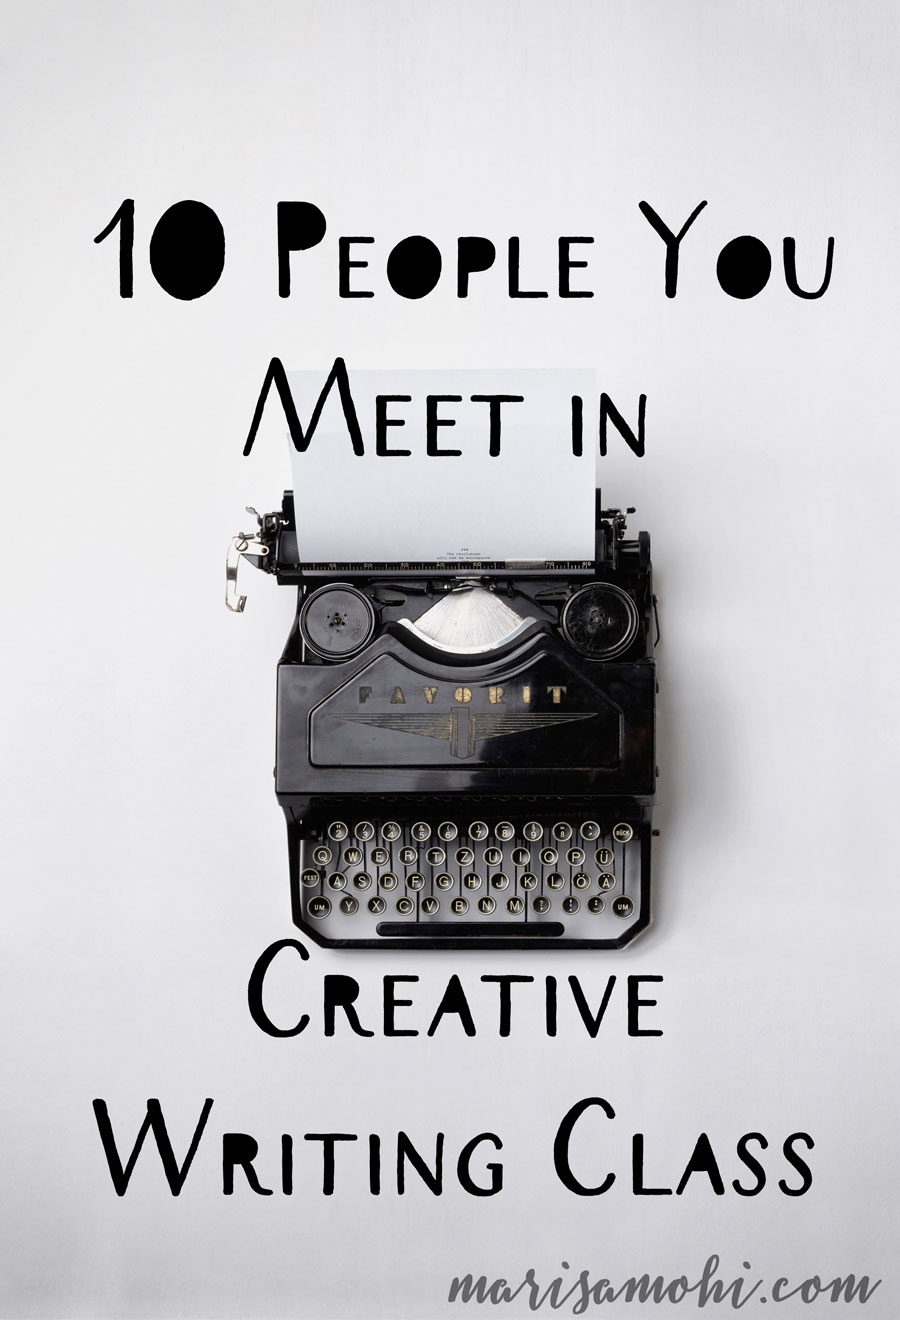 10 people you meet in creative writing class